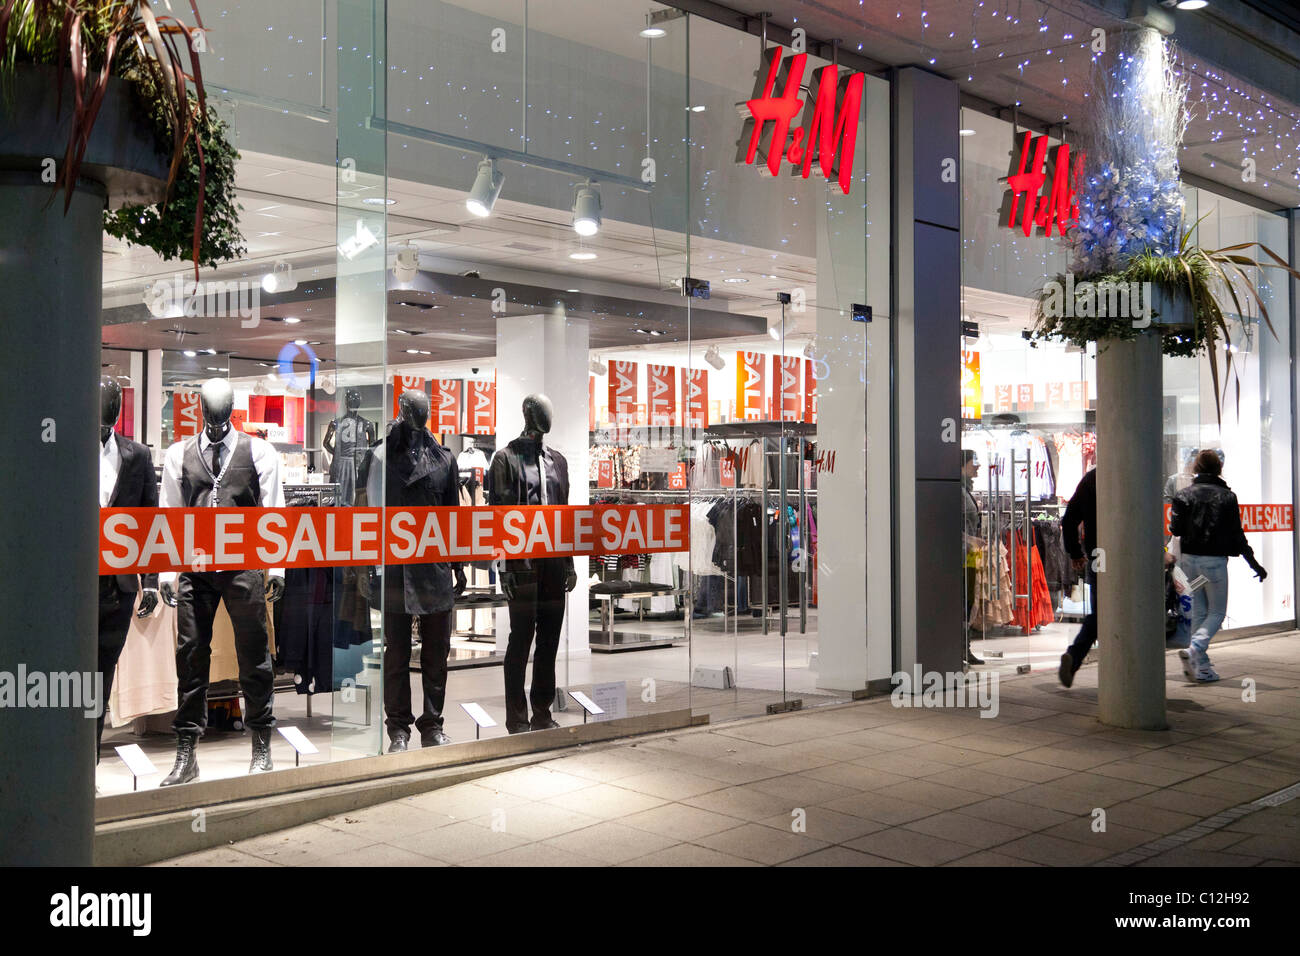 H&M sales at shop, UK Stock Photo